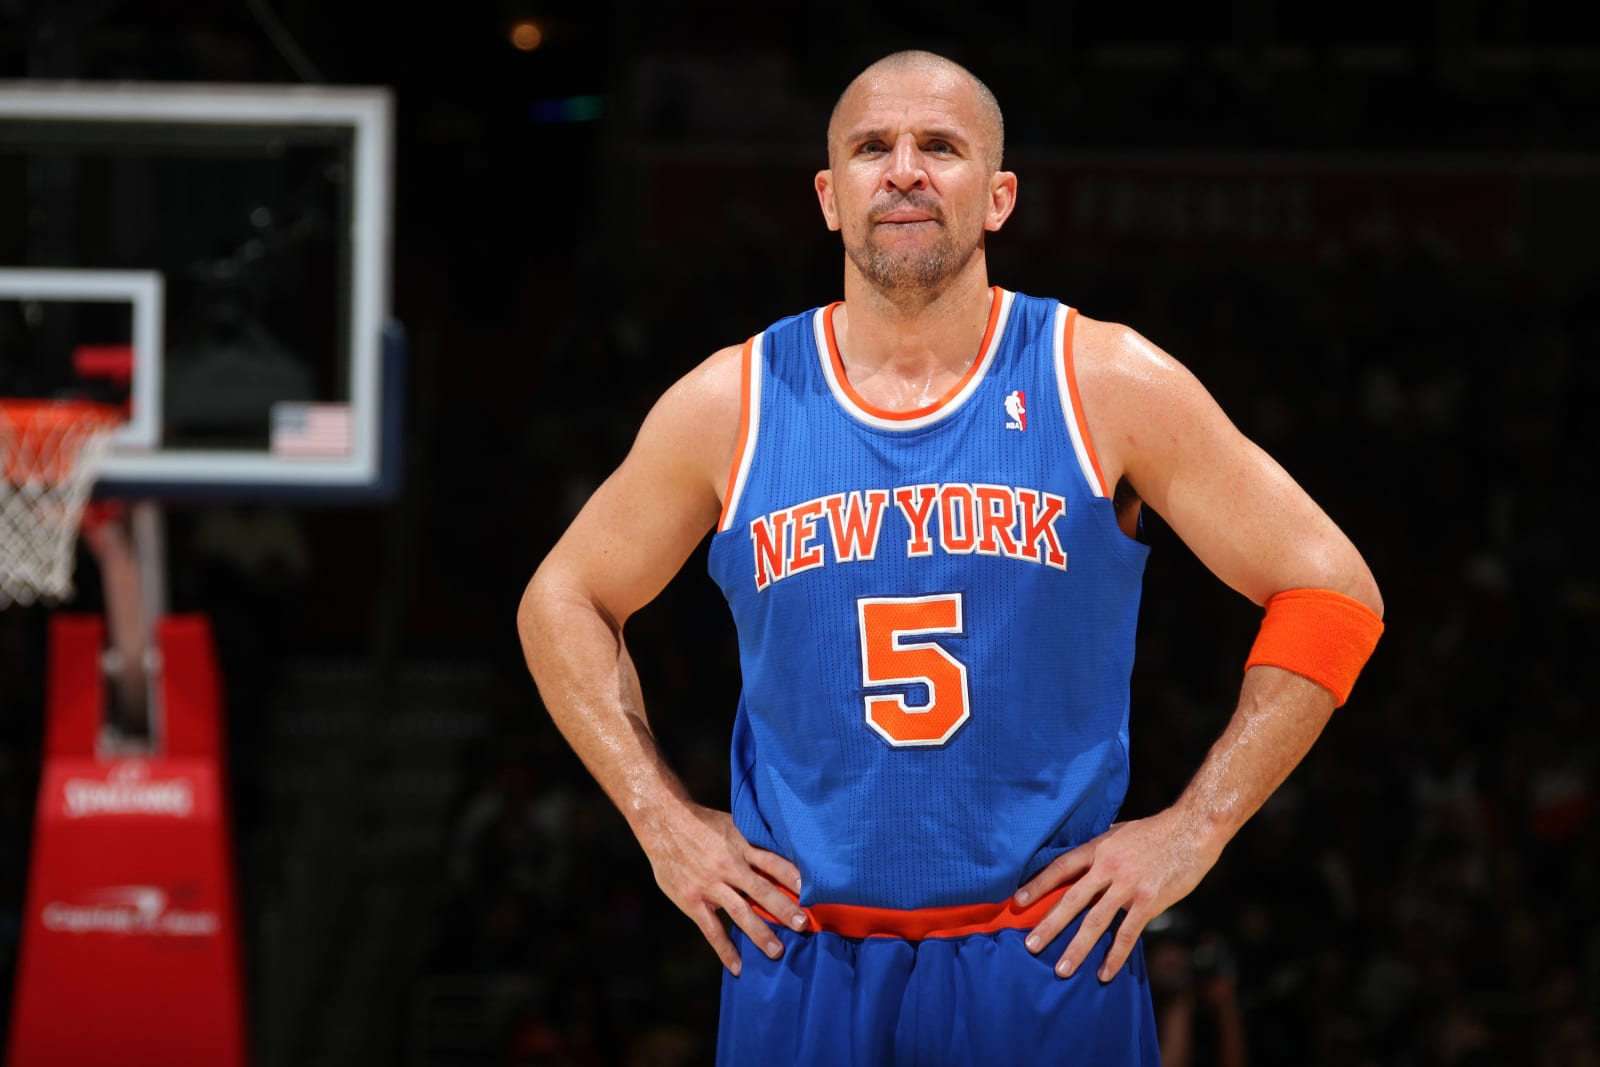 Jason Kidd, New York Knicks